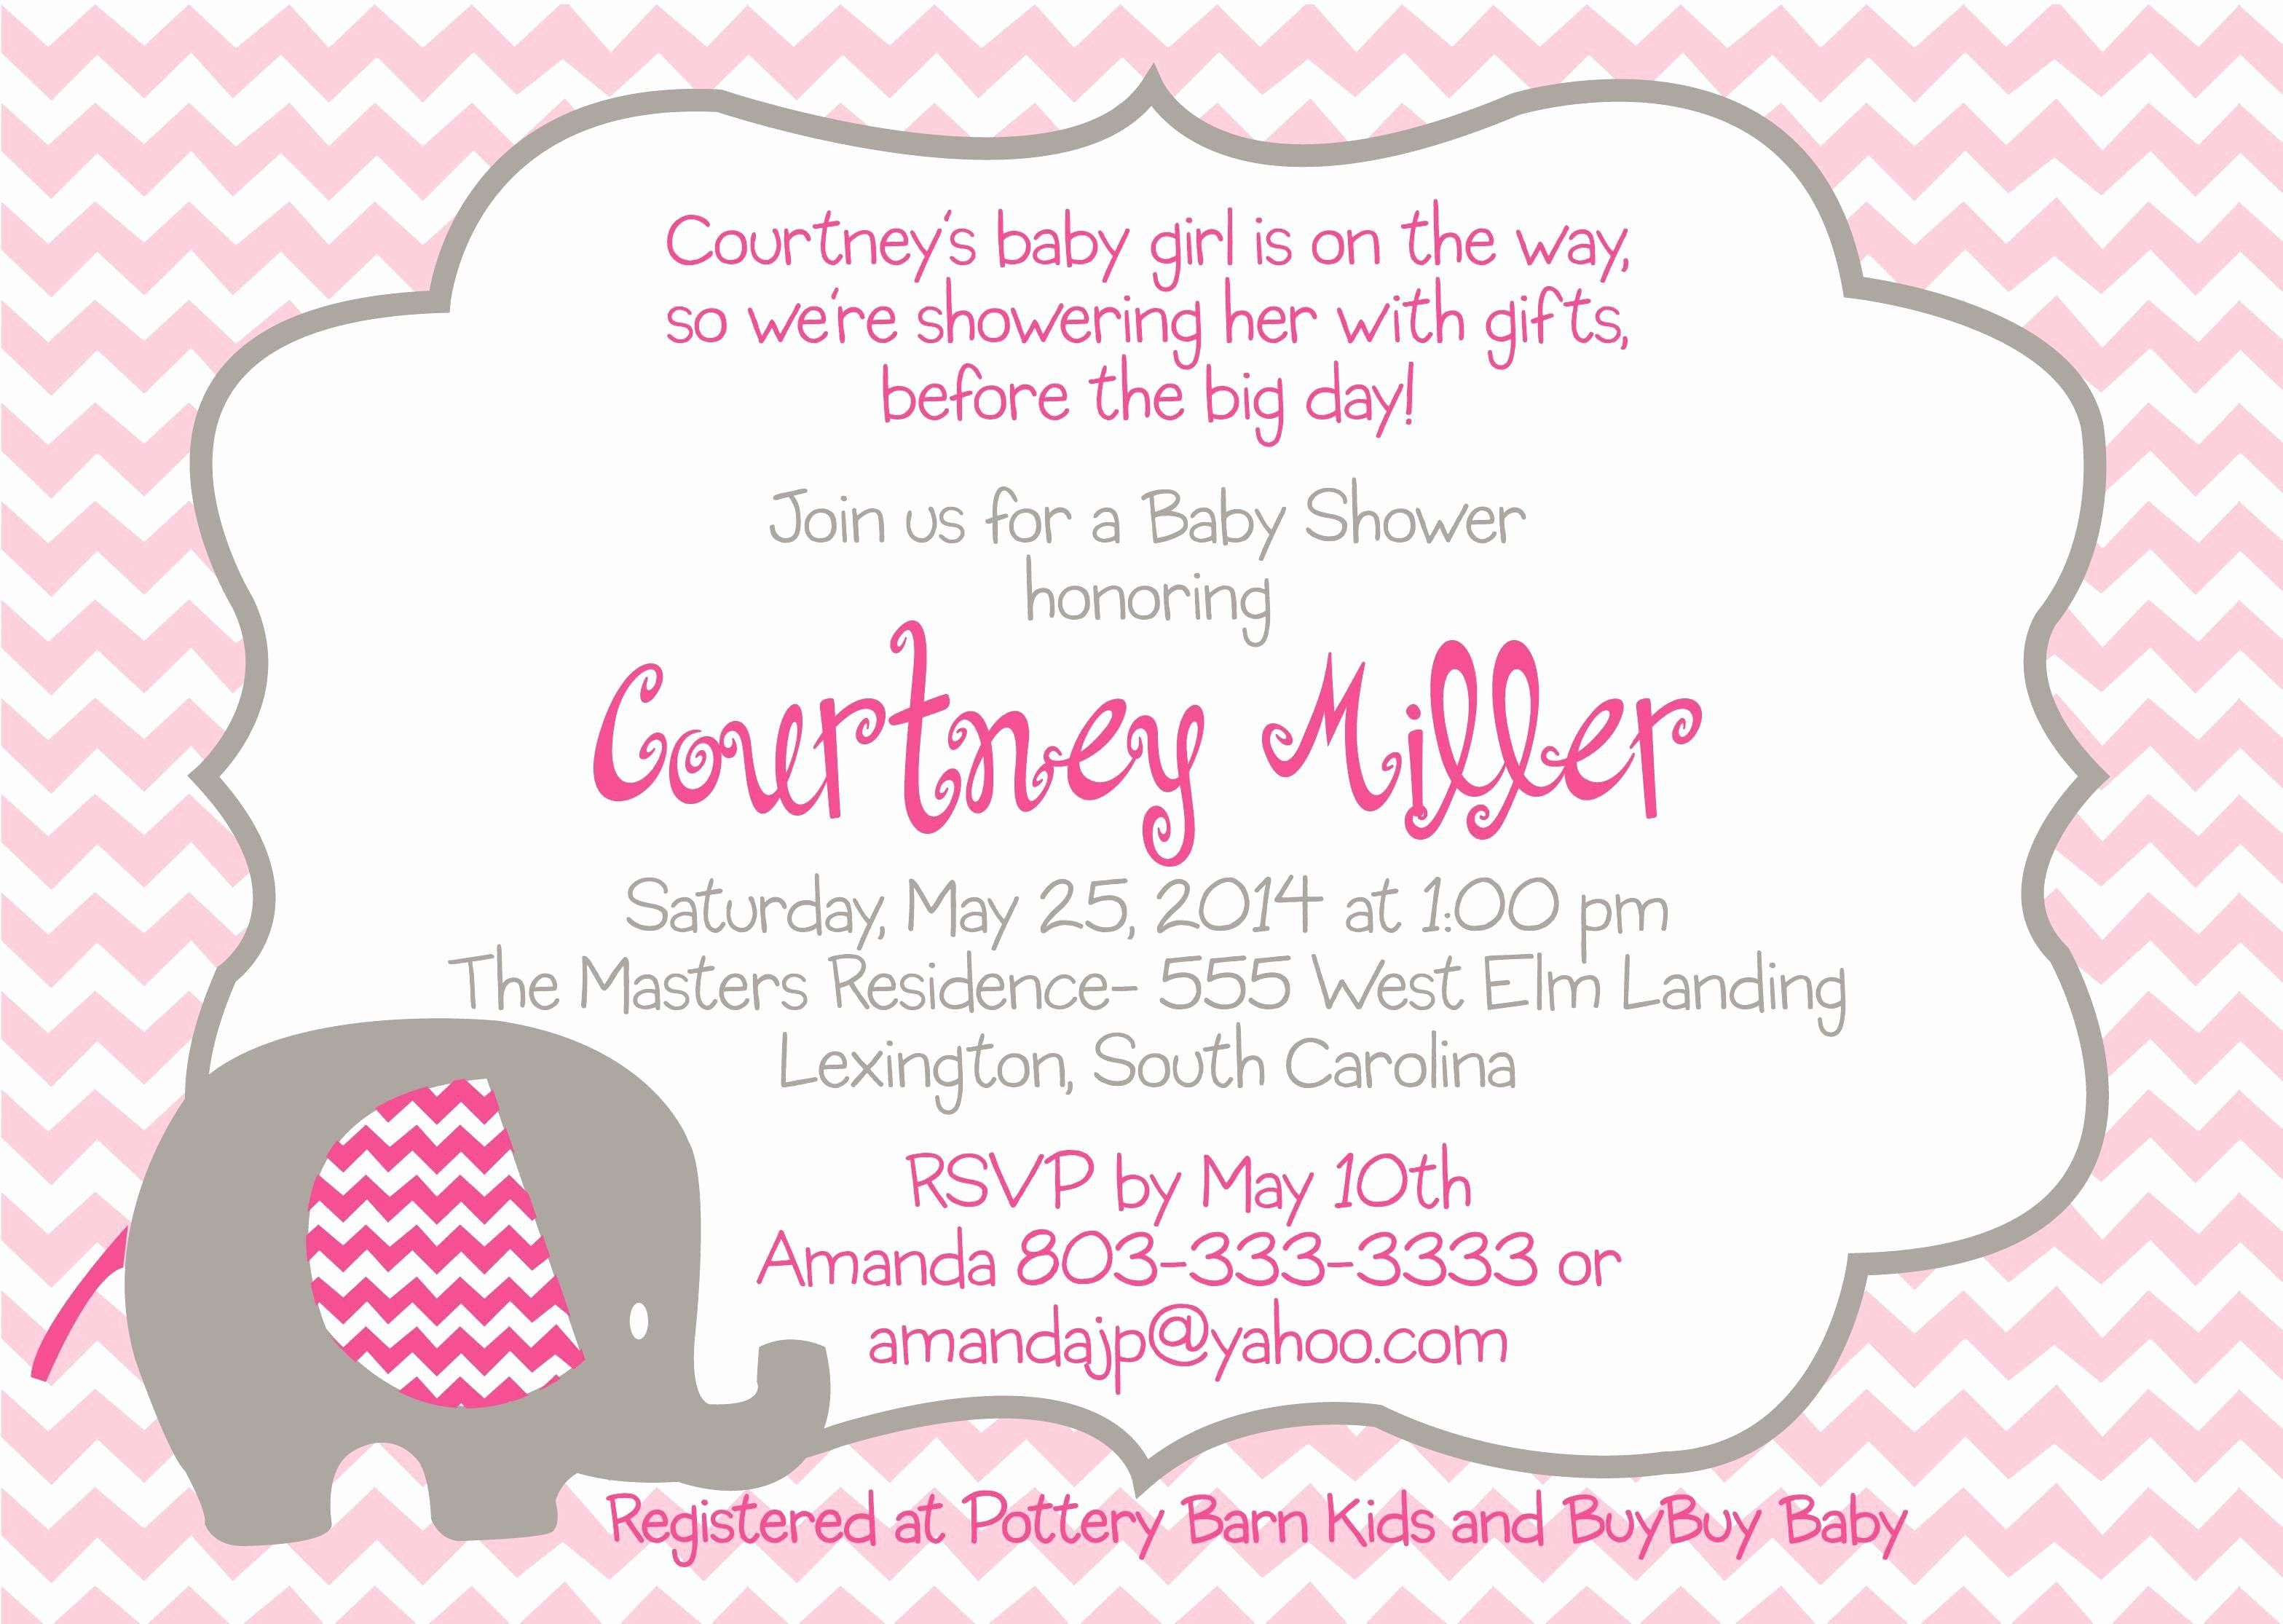 Free Baby Shower Invitation Templates Luxury The Fascinating Free Ba Elephant Baby Shower Invitations Free Baby Shower Invitations Baby Shower Invitation Cards